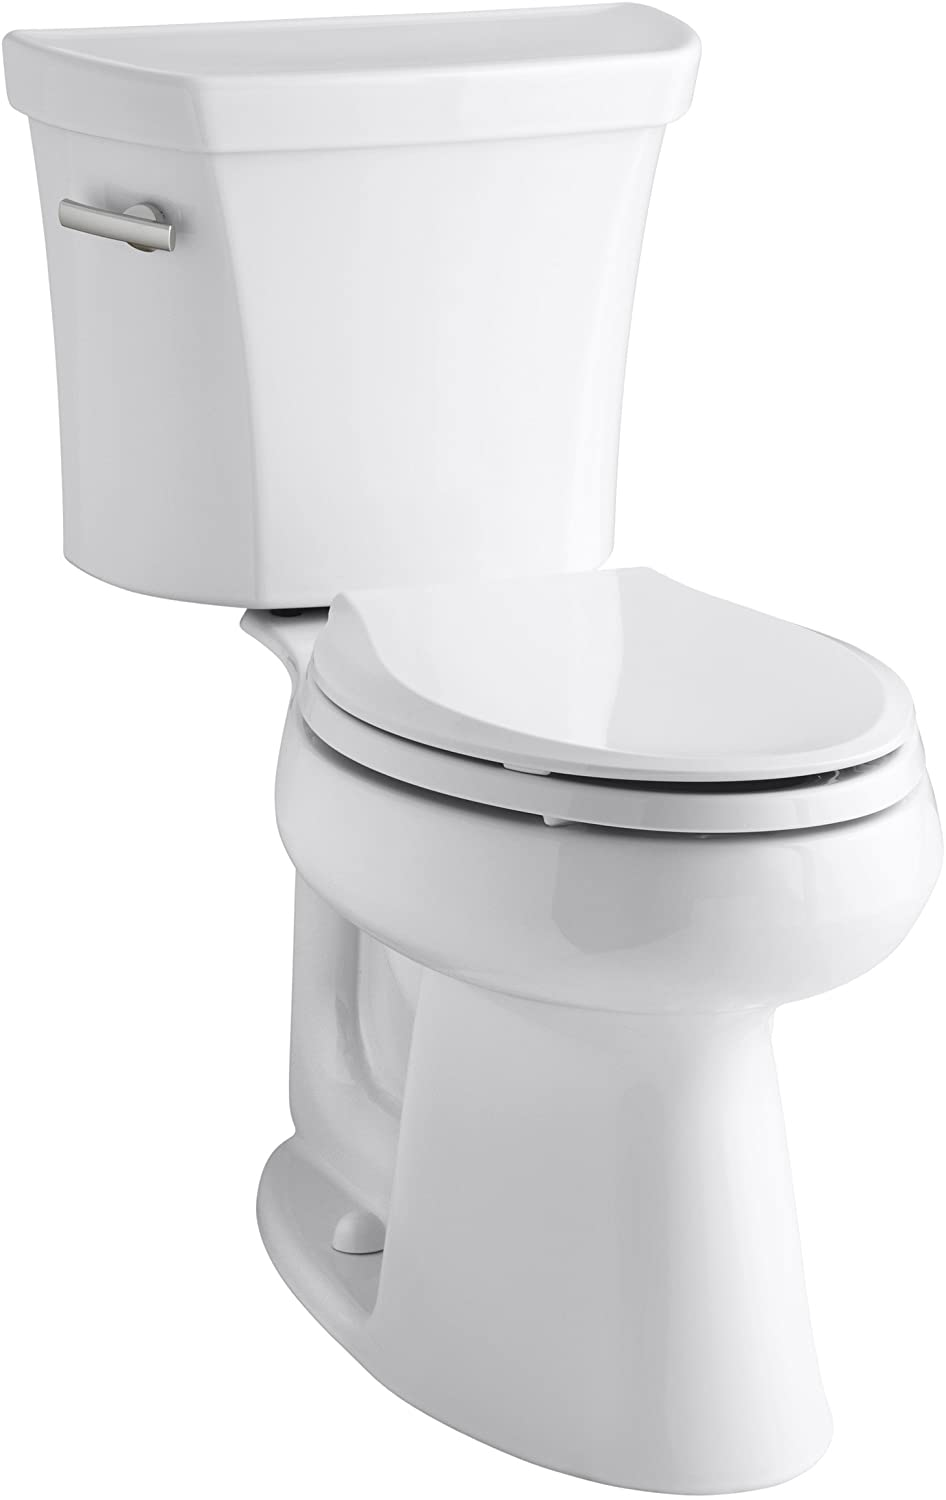 best comfort height toilets: KOHLER K-3999-0 Highline Comfort Height Toilet